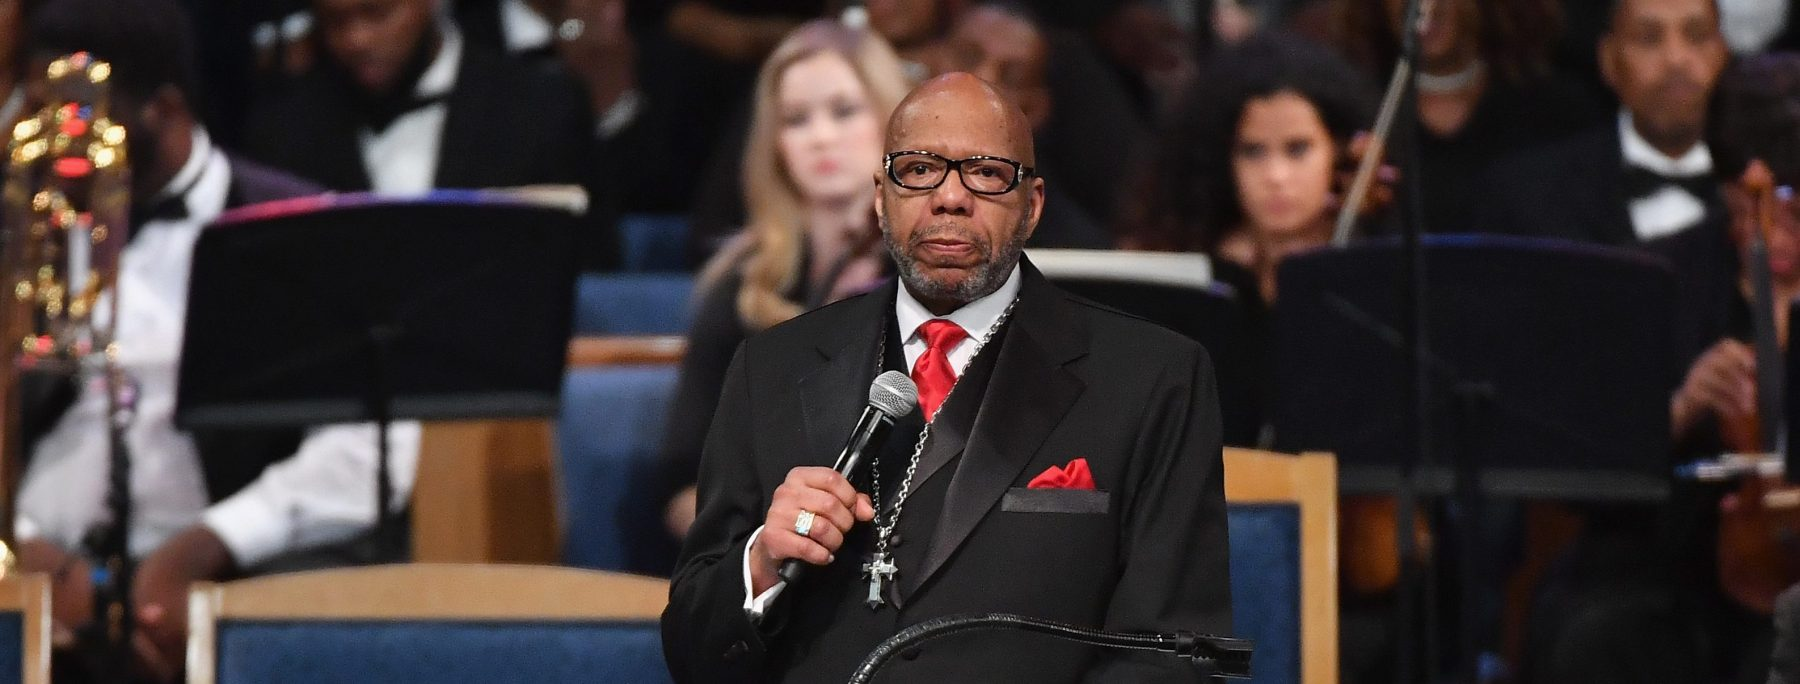 Rev. Jasper Williams Jr. gives eulogy at Aretha Franklin's funeral at Greater Grace Temple on August 31, 2018 in Detroit, Michigan. (Photo by Angela Weiss / AFP)